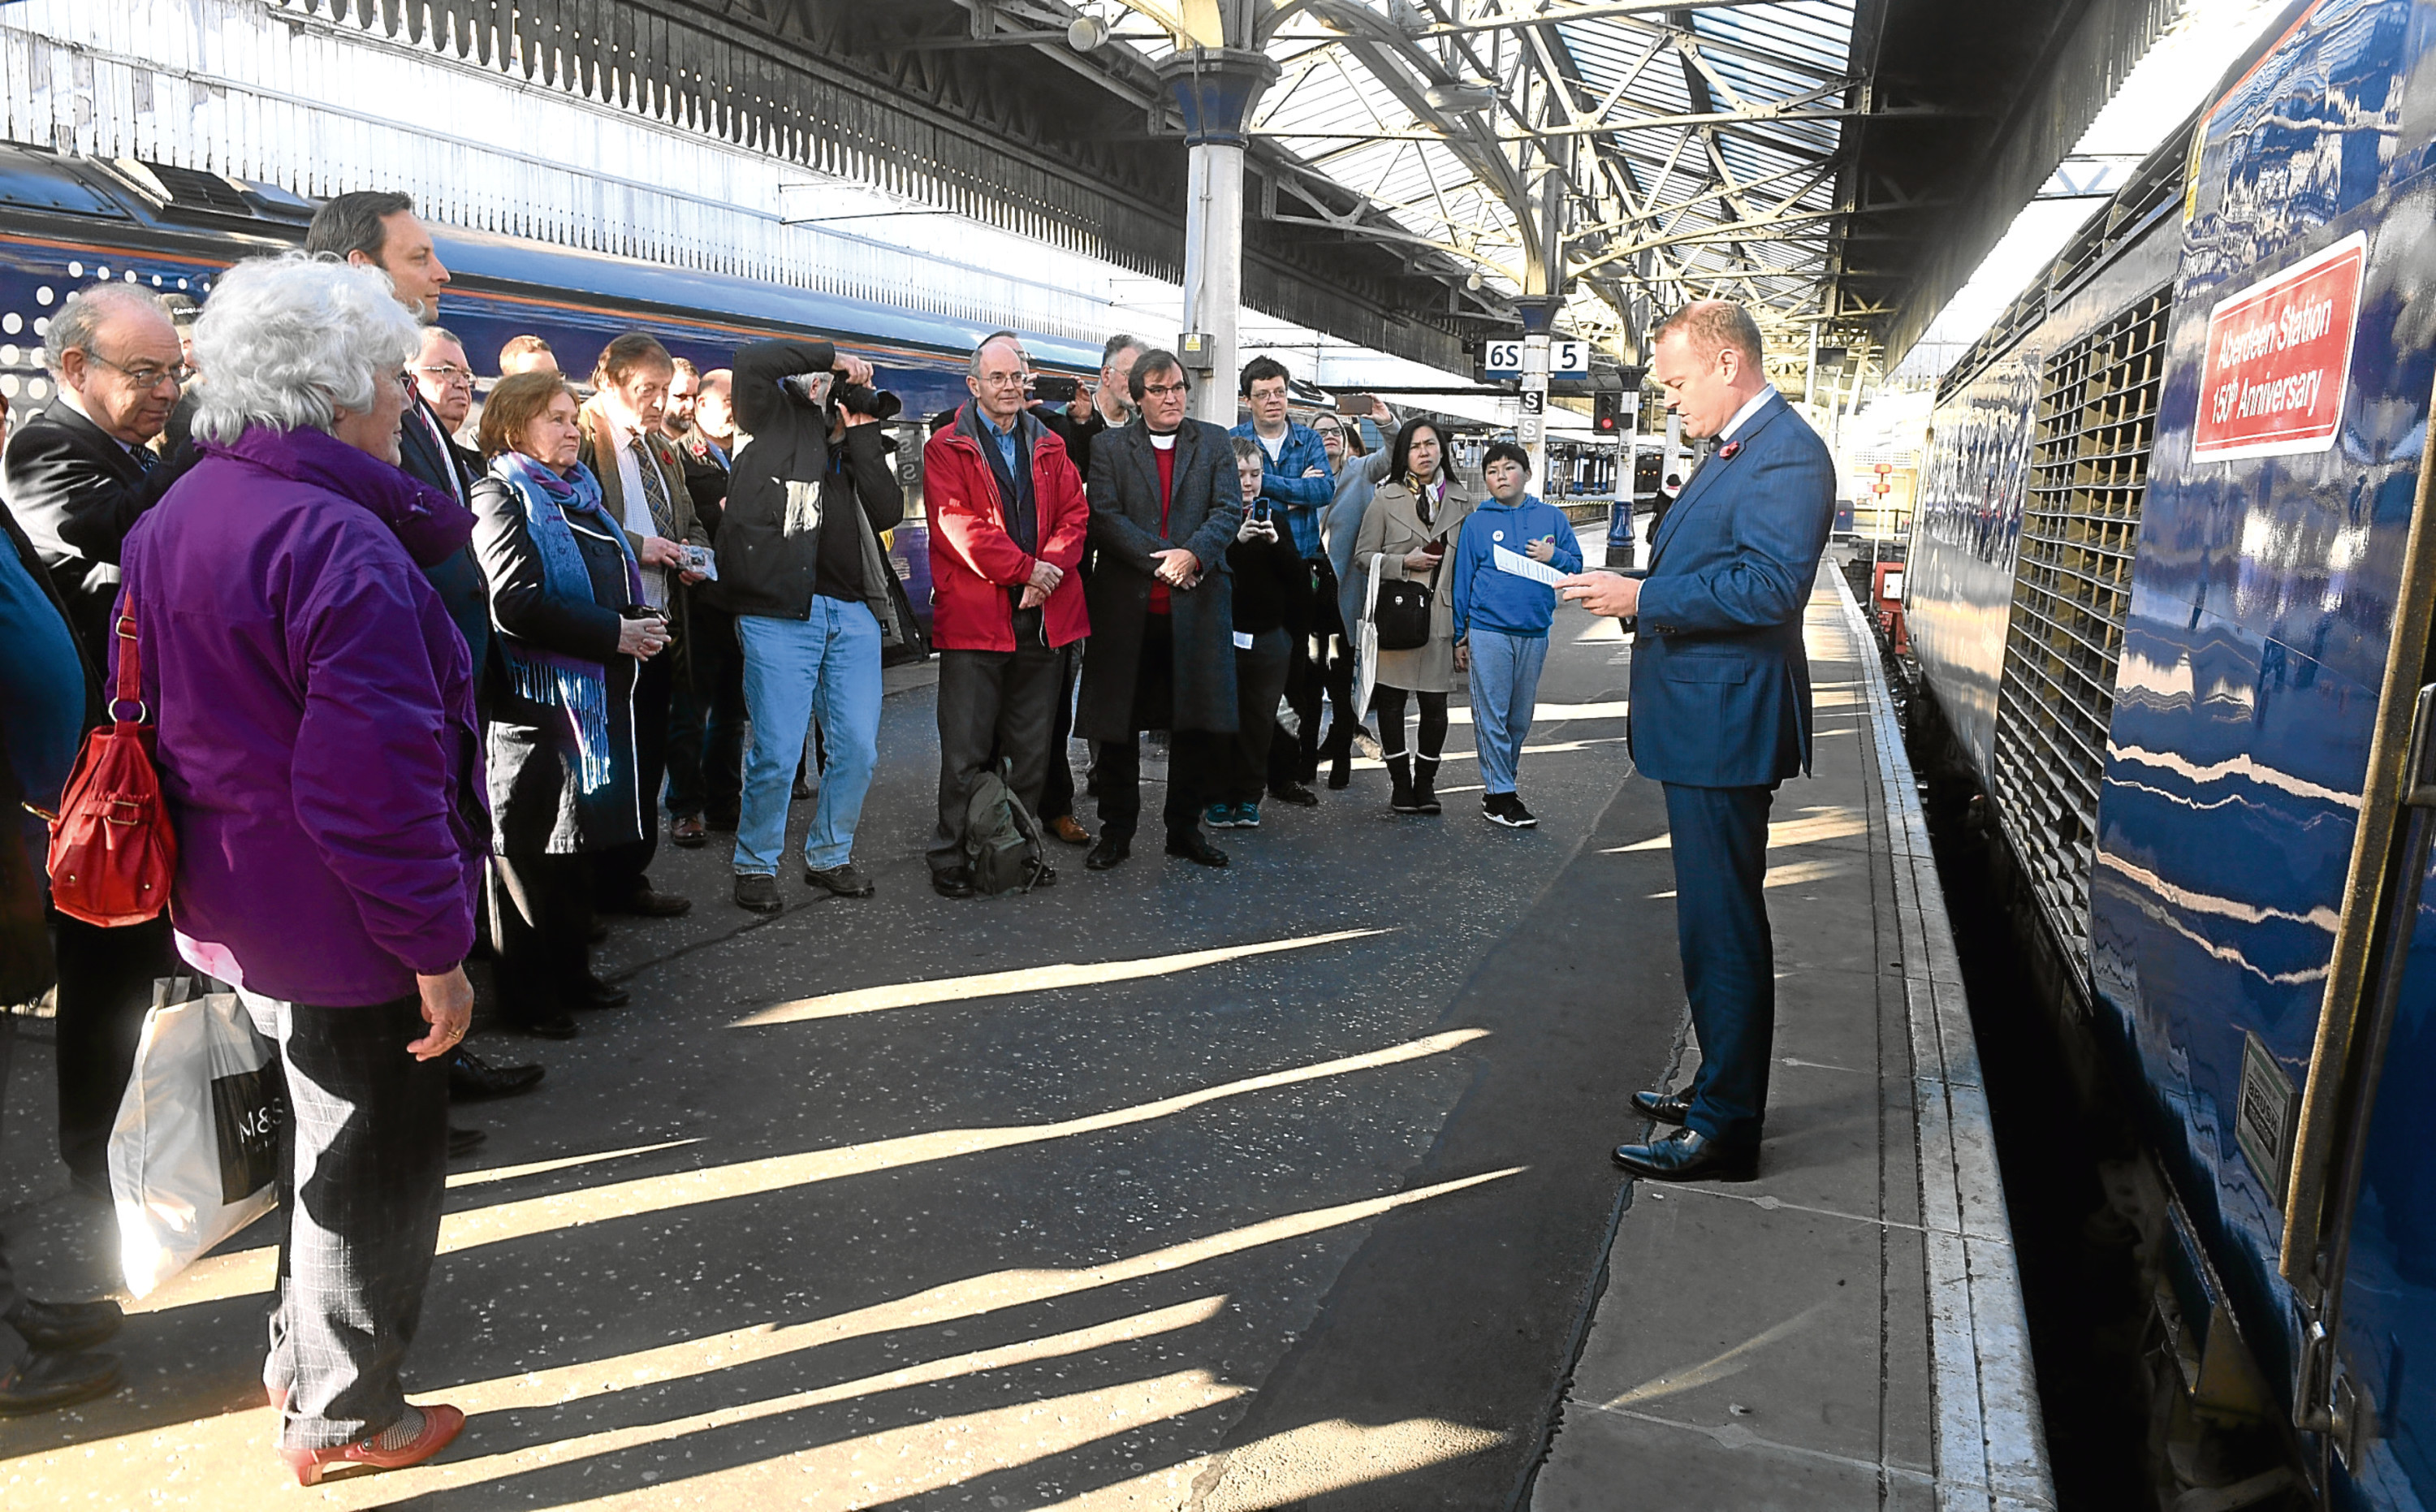 Aberdeen Railway Station celebrated it's 150th anniversary on Saturday.